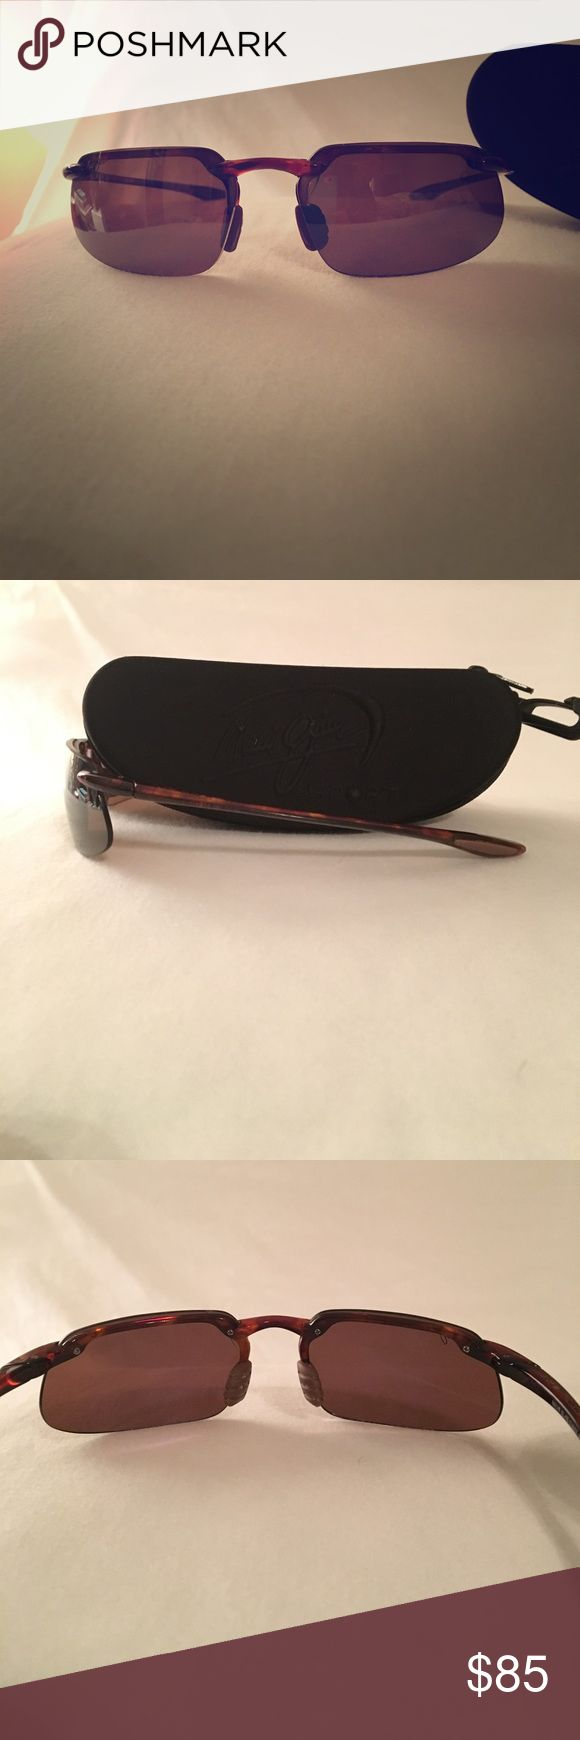 Maui Jim Sport Sunglasses Mirrored, UV Blocking, light Sport Sunglasses perfect for running to wearing under a hat watching a sporting event. In good condition, no scratches, flexible frame to prevent bending. Comes with case. Maui Jim Accessories Sunglasses